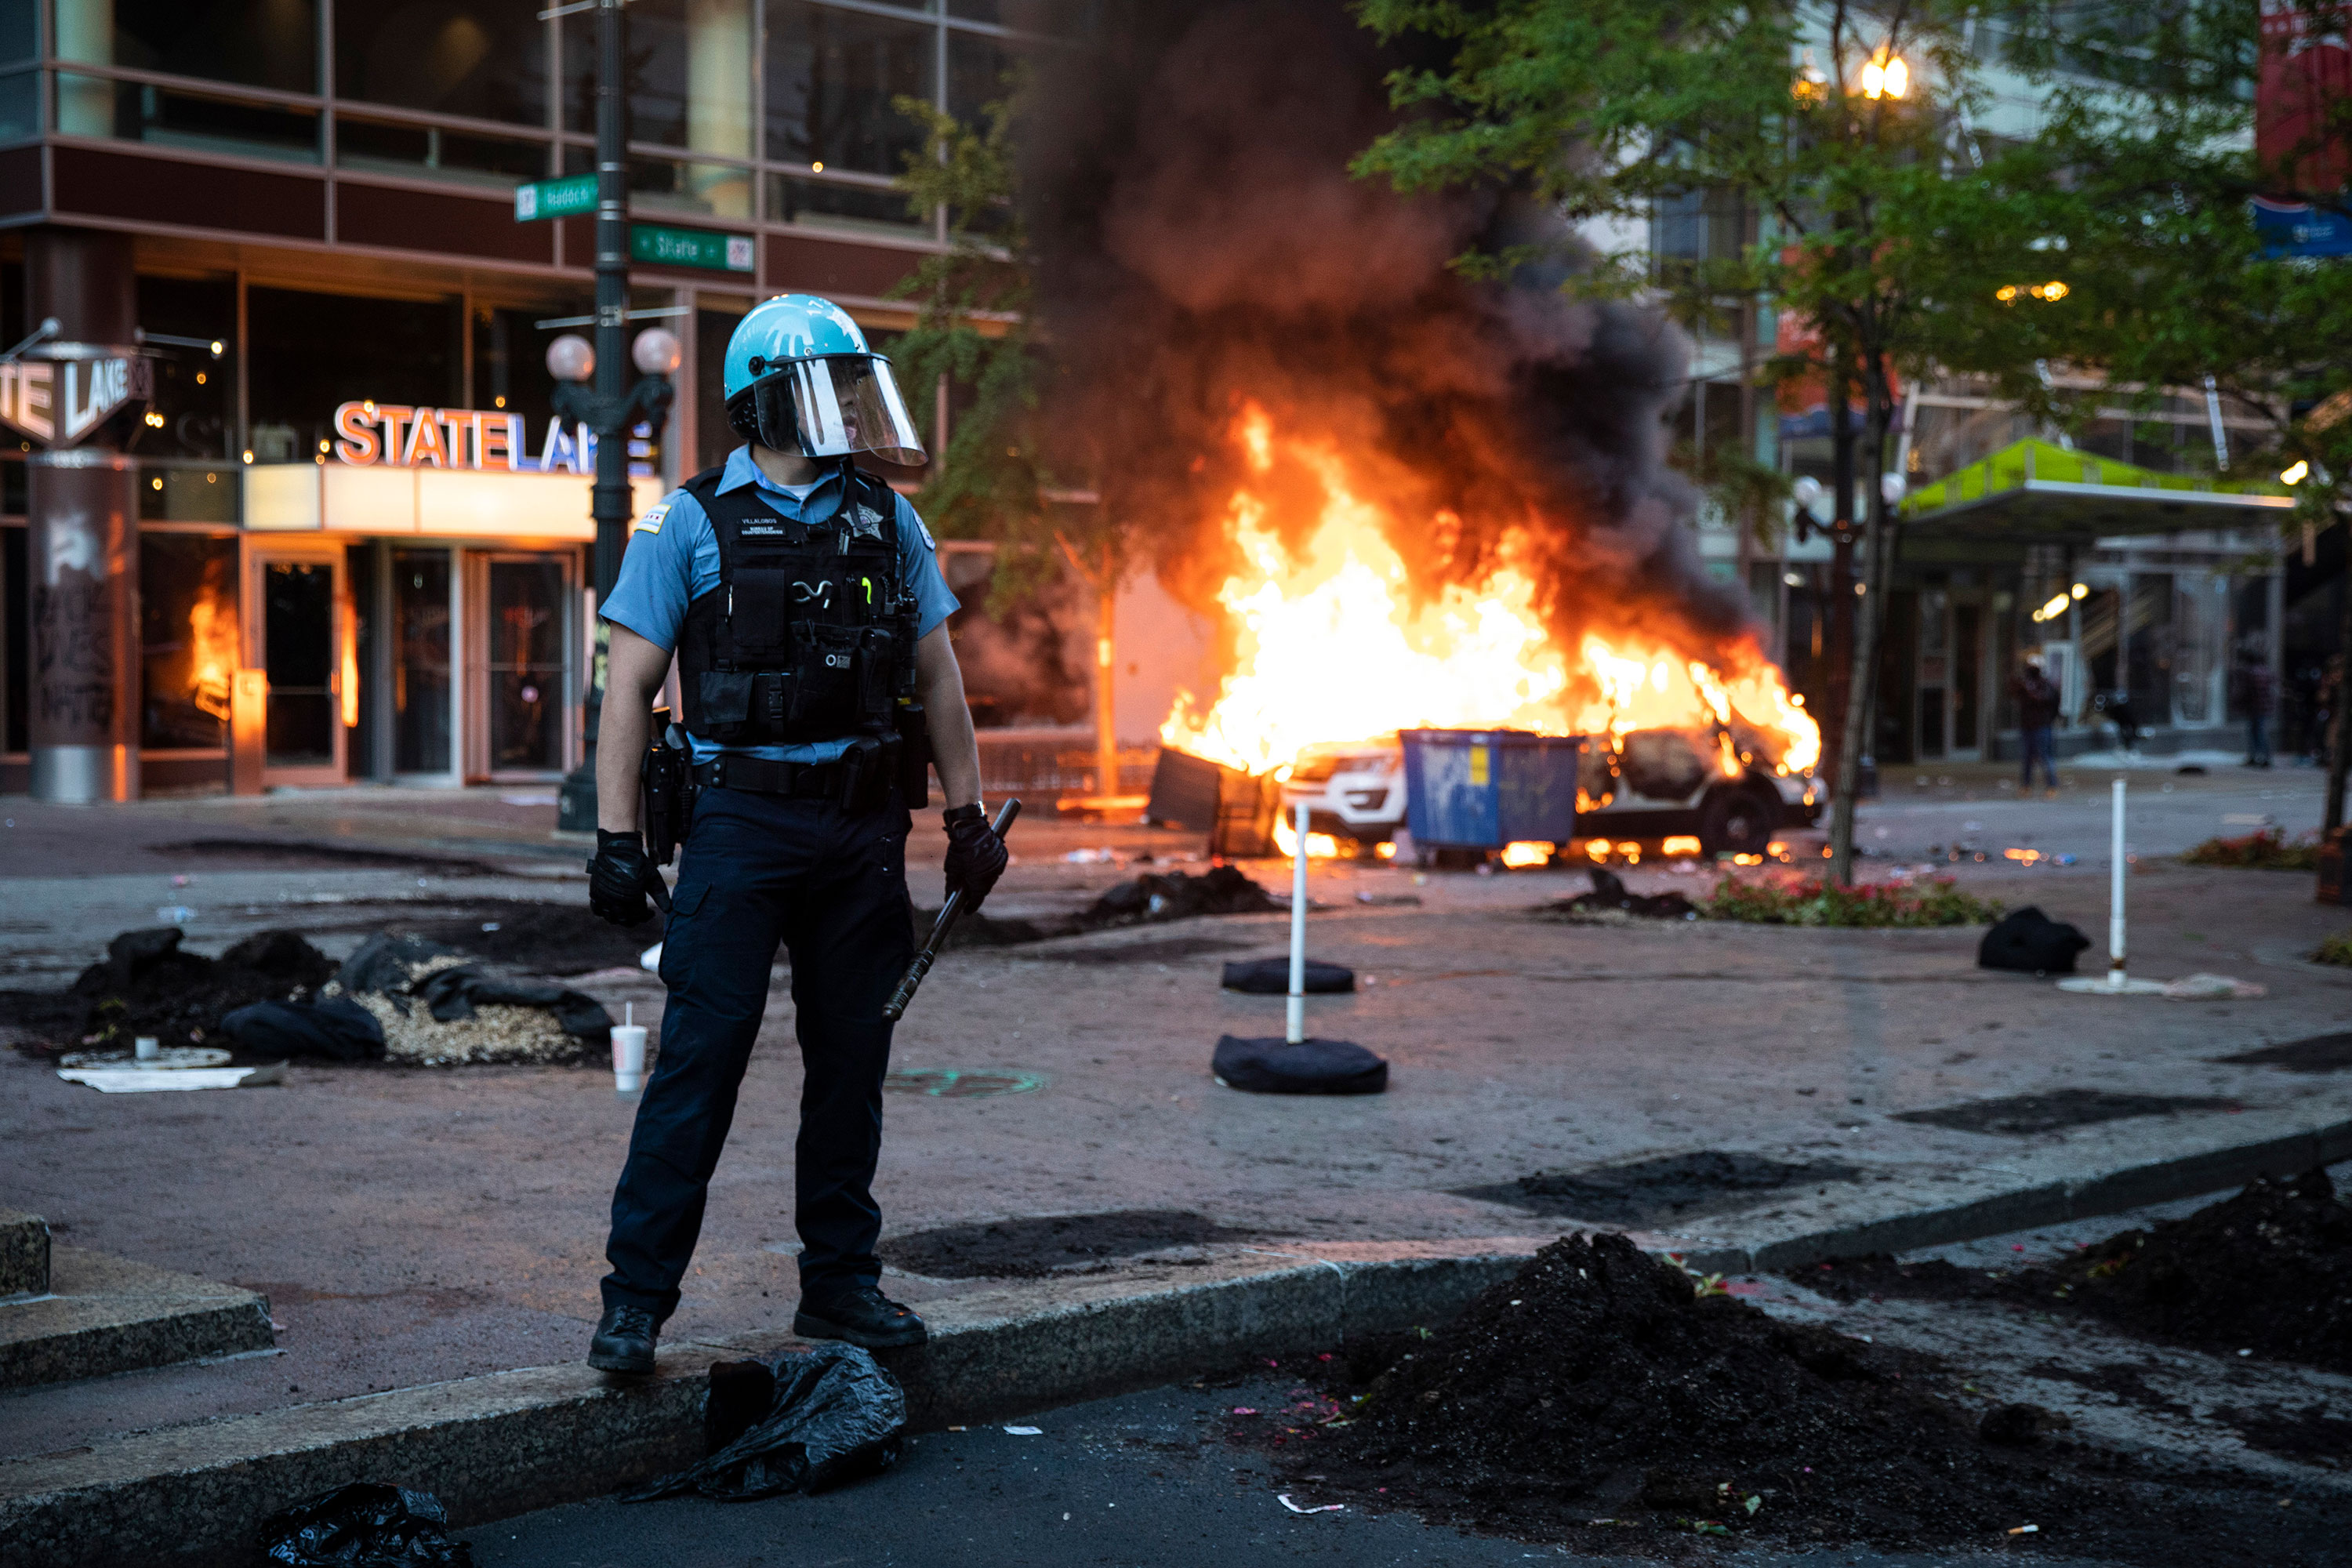 A Chicago Police Department SUV burns near State and Lake in the Loop in Chicago on May 30.